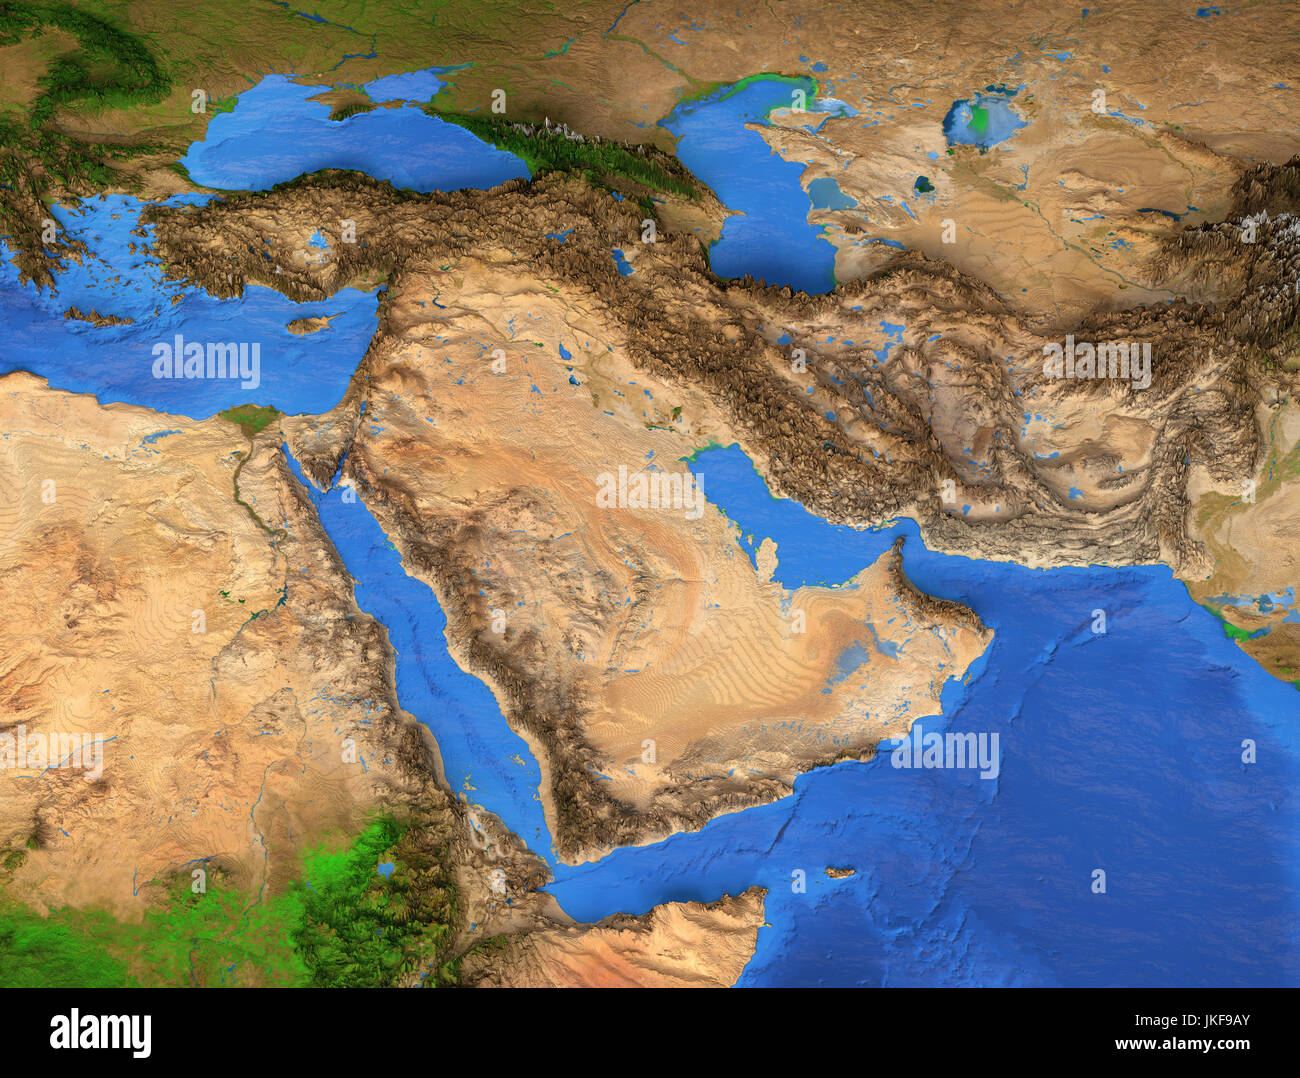 Middle East map Gulf Region Detailed satellite view of the Earth